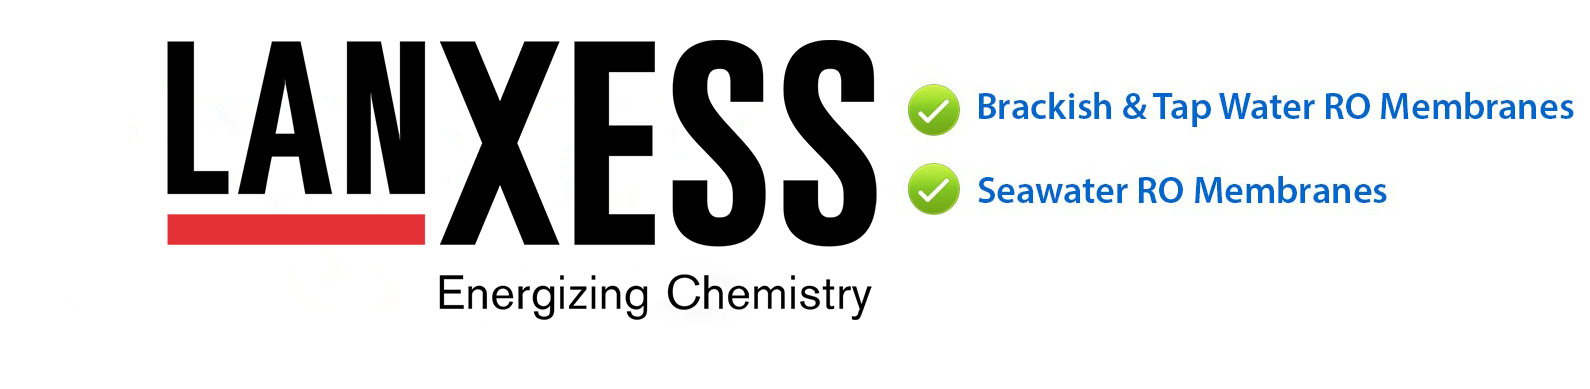 lanxess-energizing-chemistry-front-page.jpg